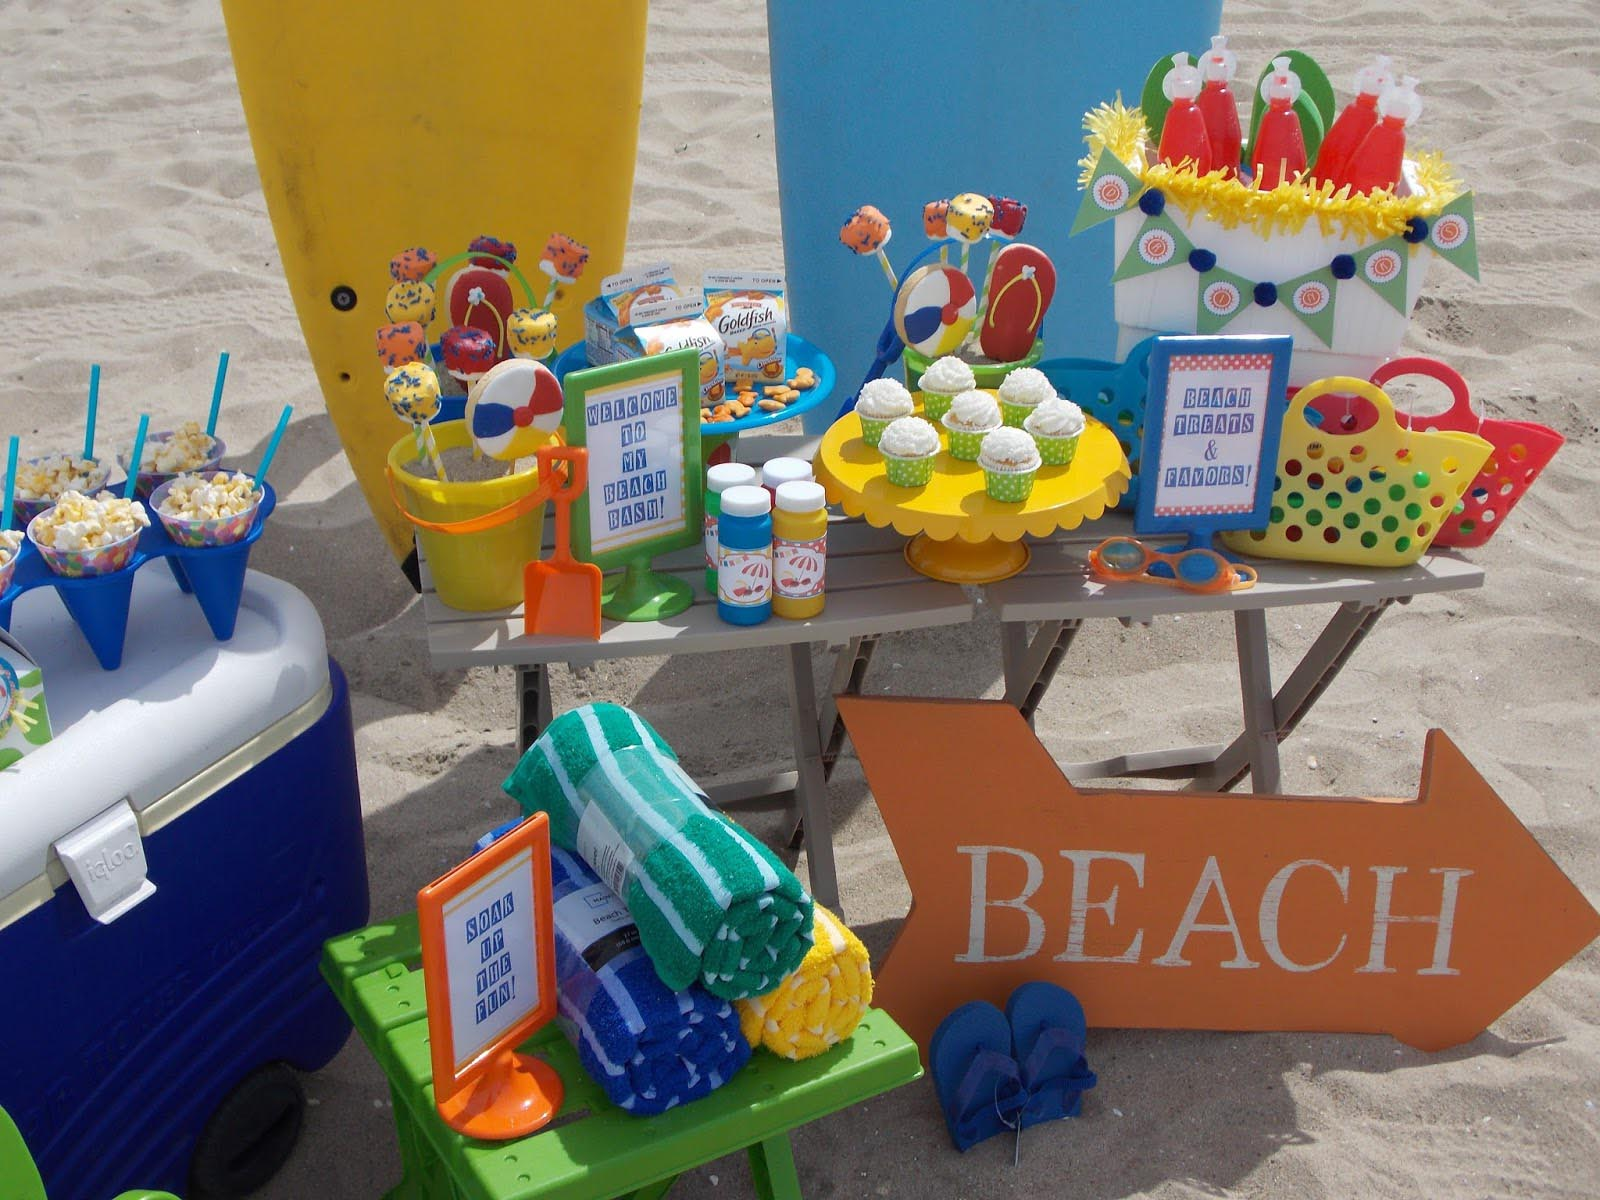 Beach Birthday Party – An Exhaustive Planning Guide